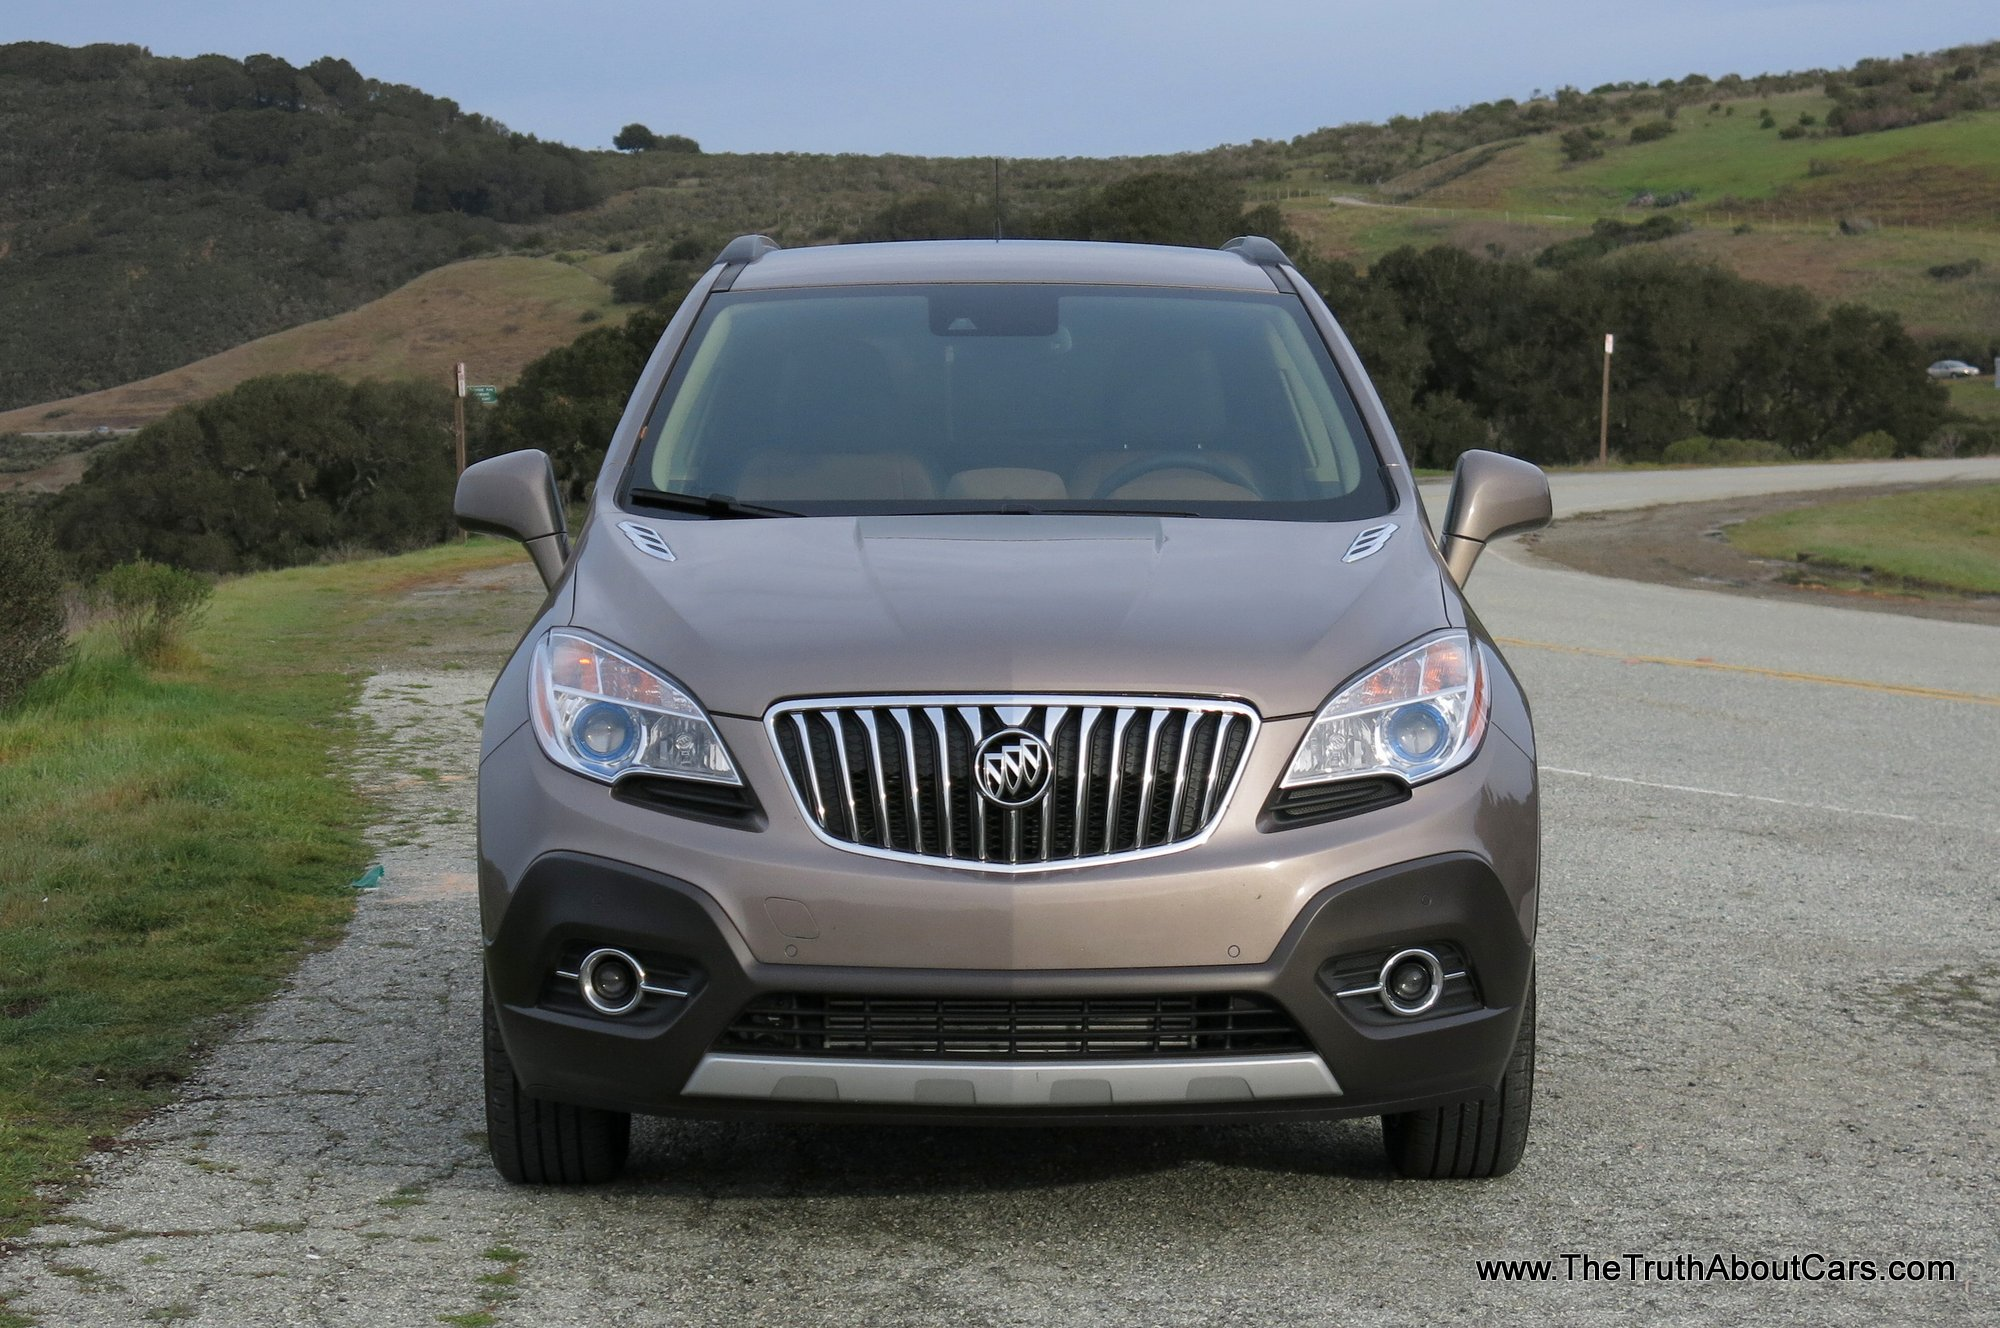 Review: 2013 Buick Encore (Video)